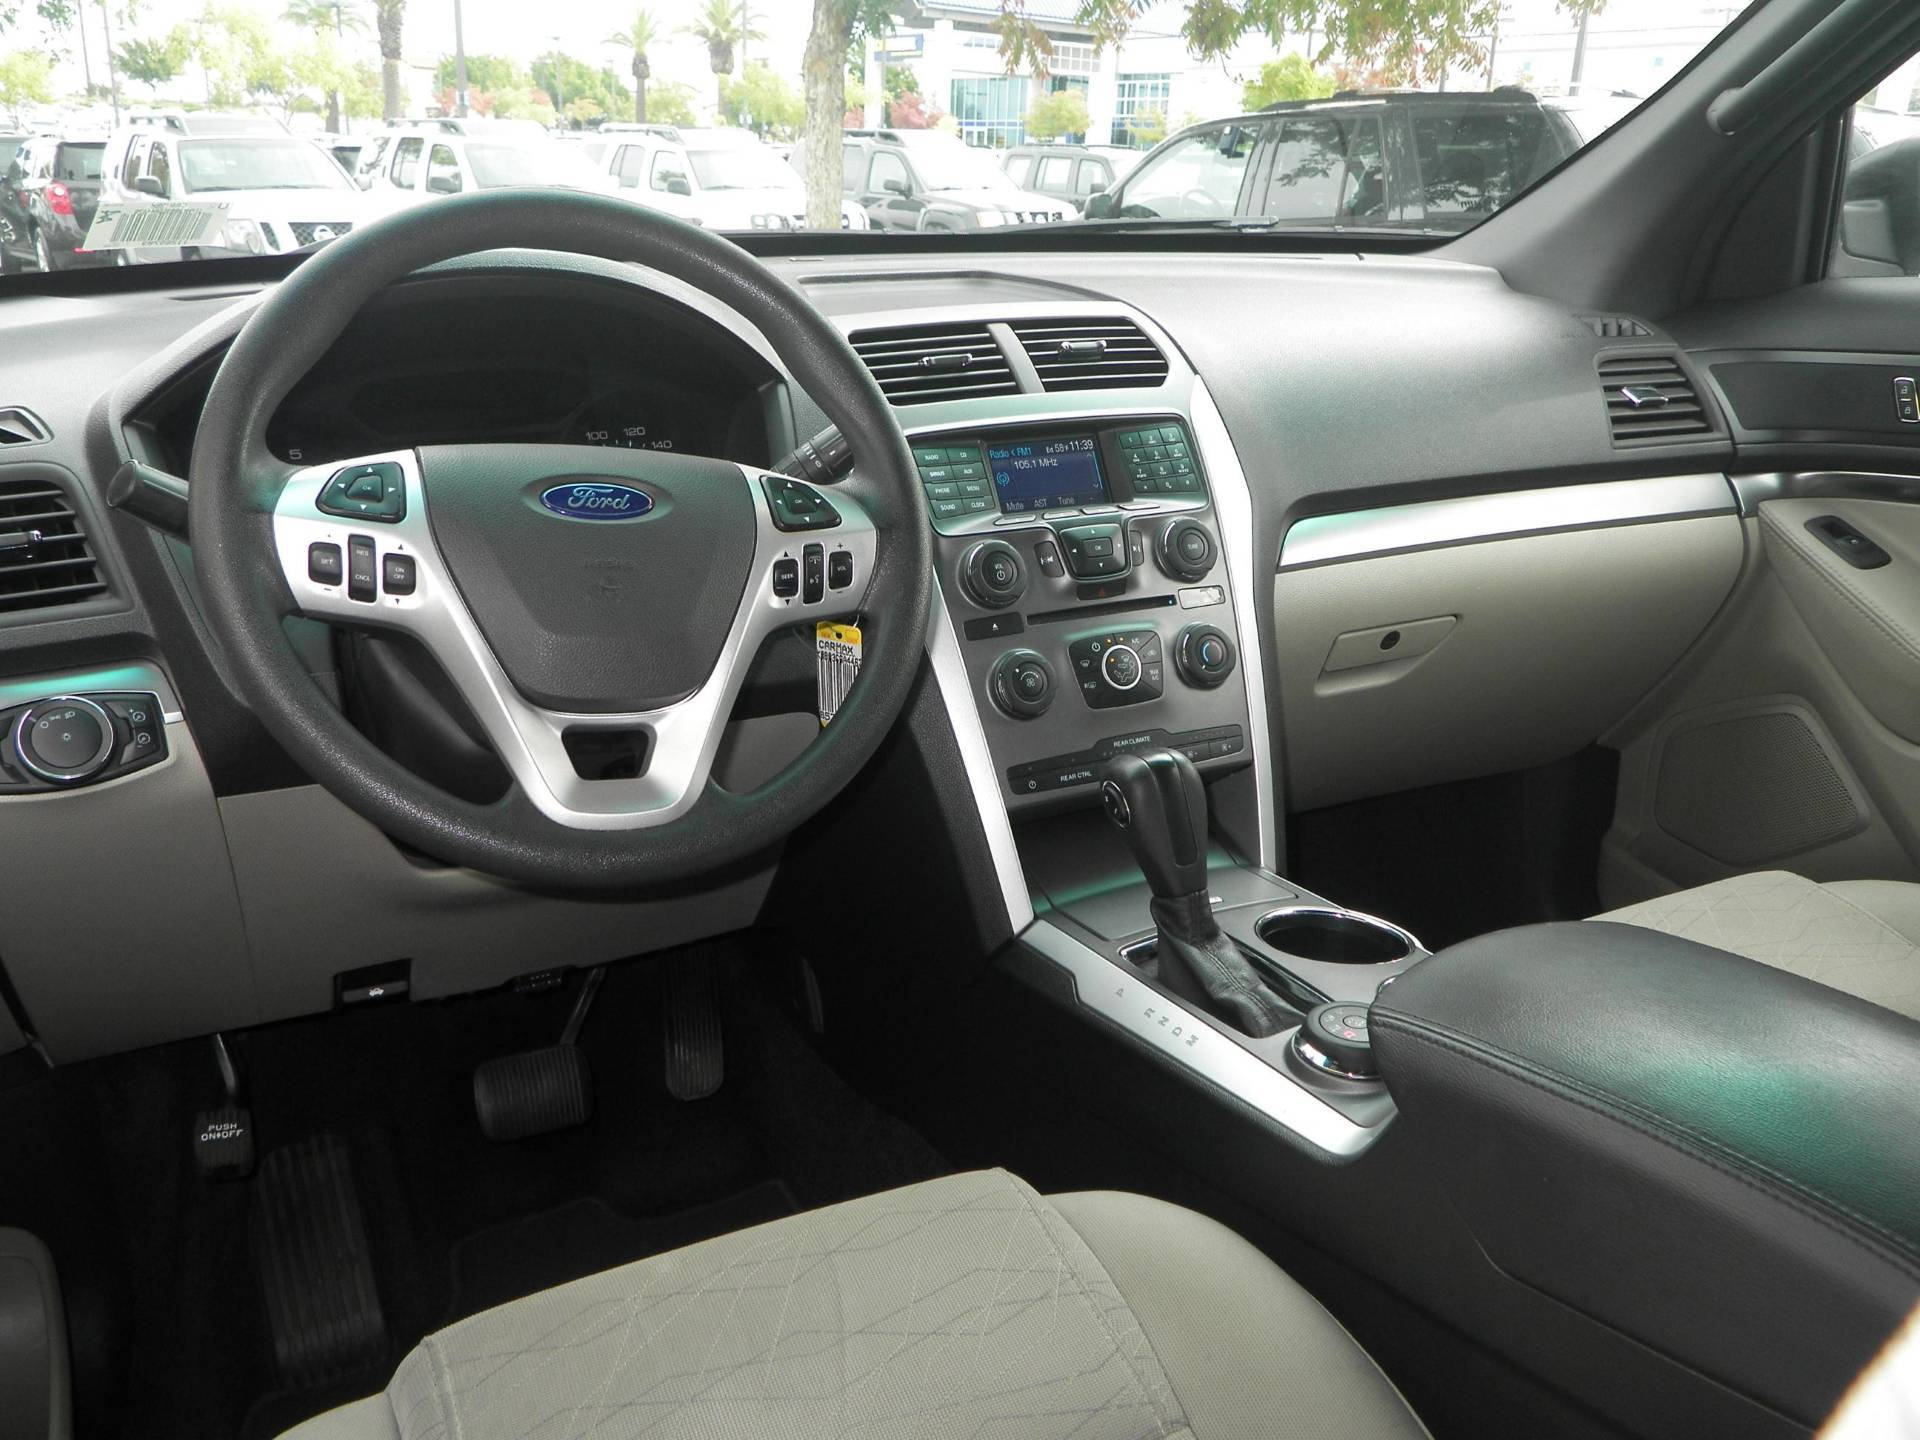 Carmax Used Cars Fresh Looking for A New Family Car Shop with Carmax the Denver Housewife